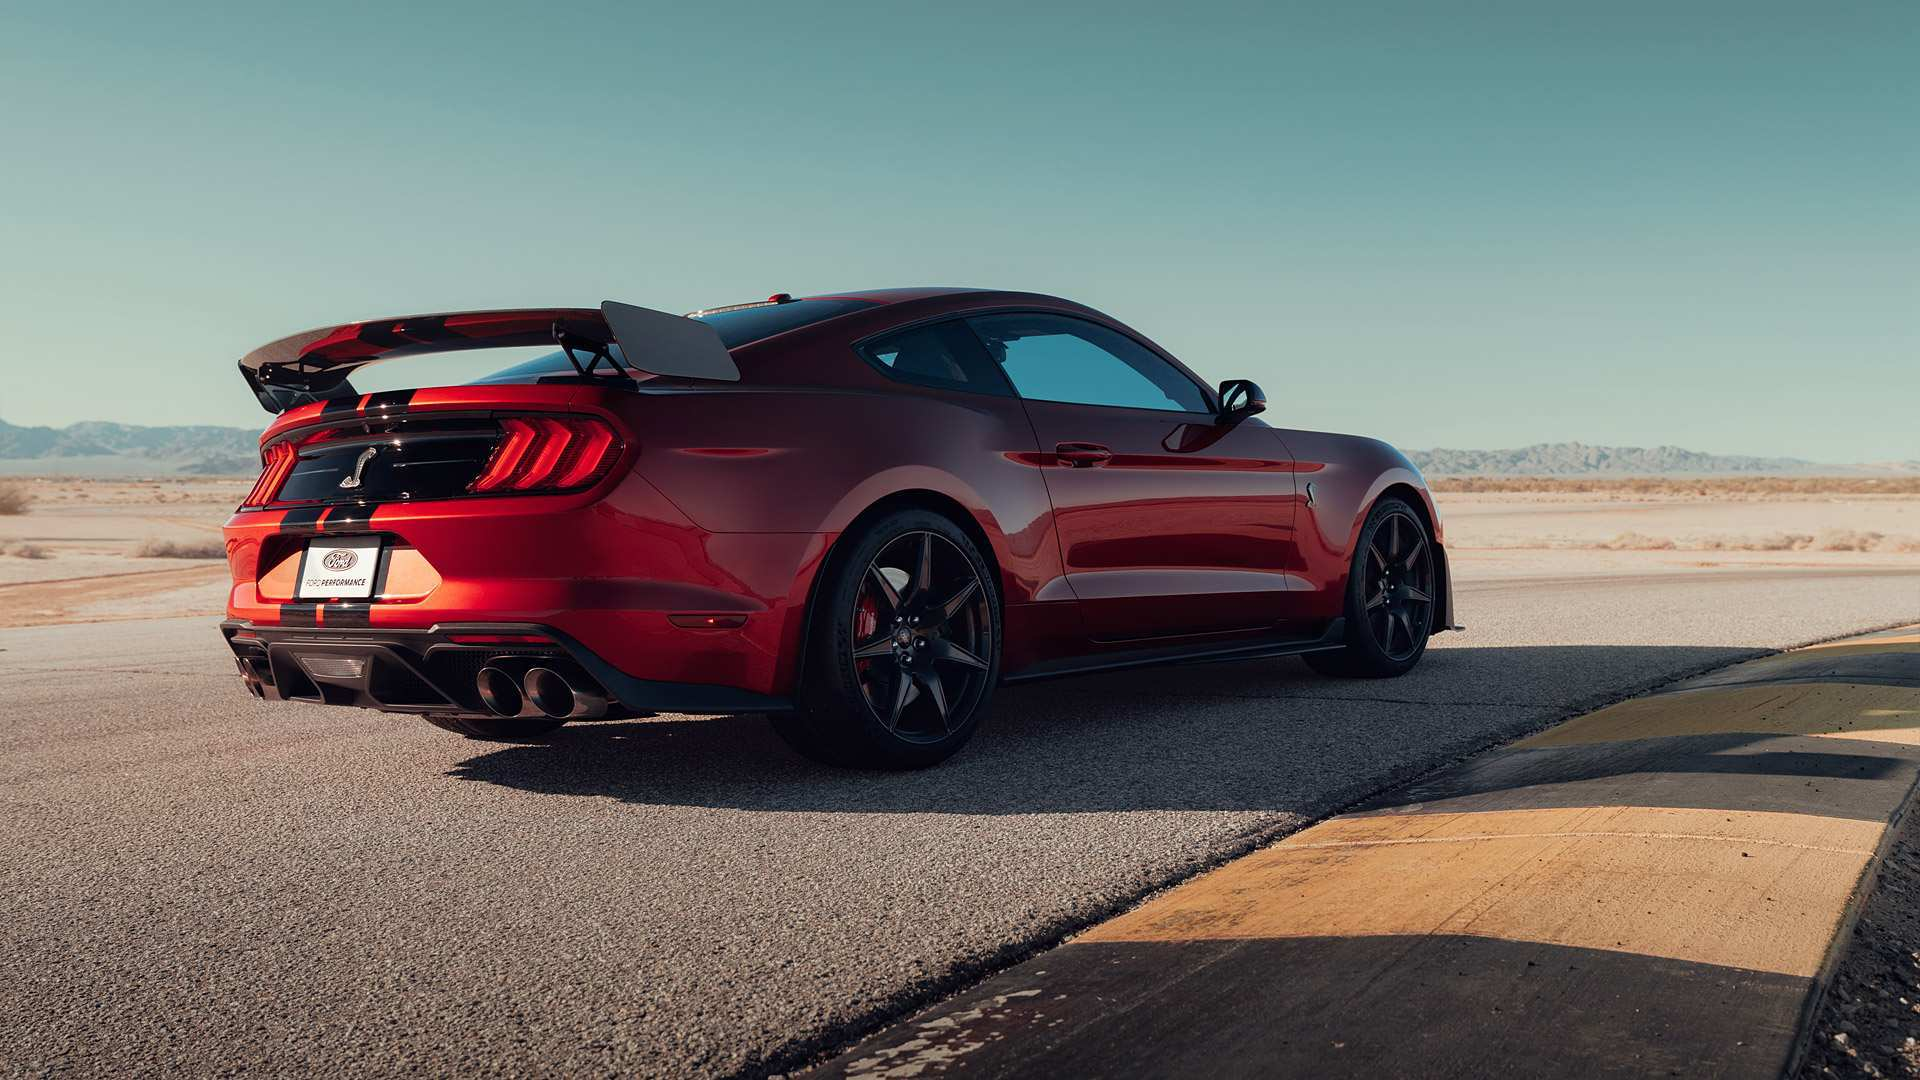 90 The 2020 Mustang Shelby Gt350 First Drive with 2020 Mustang Shelby Gt350